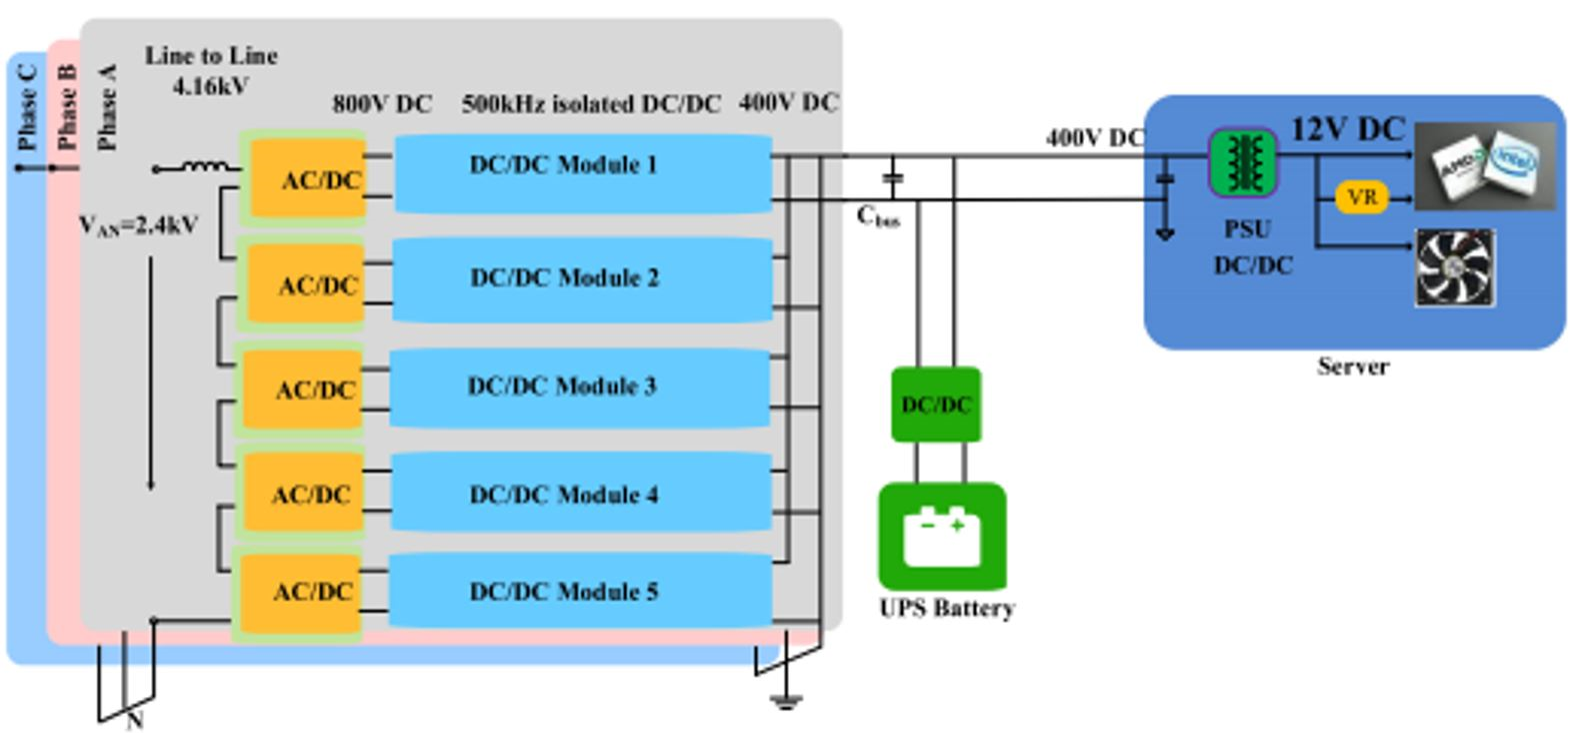 PCSB for datacenter